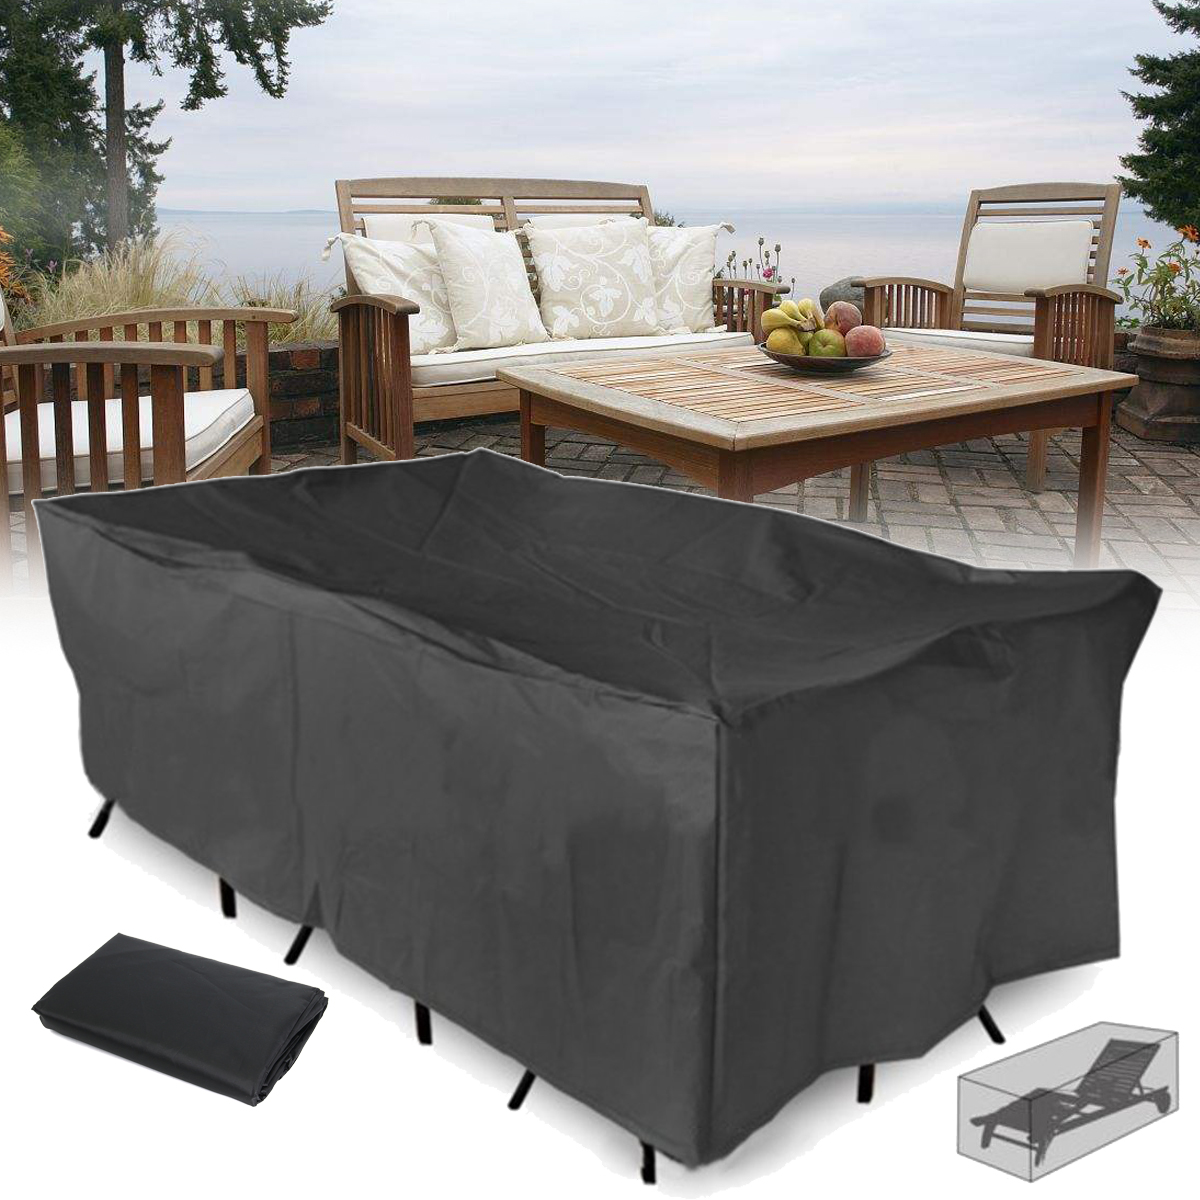 210x110x70cm Outdoor Garden Patio Furniture Waterproof Dust Cover